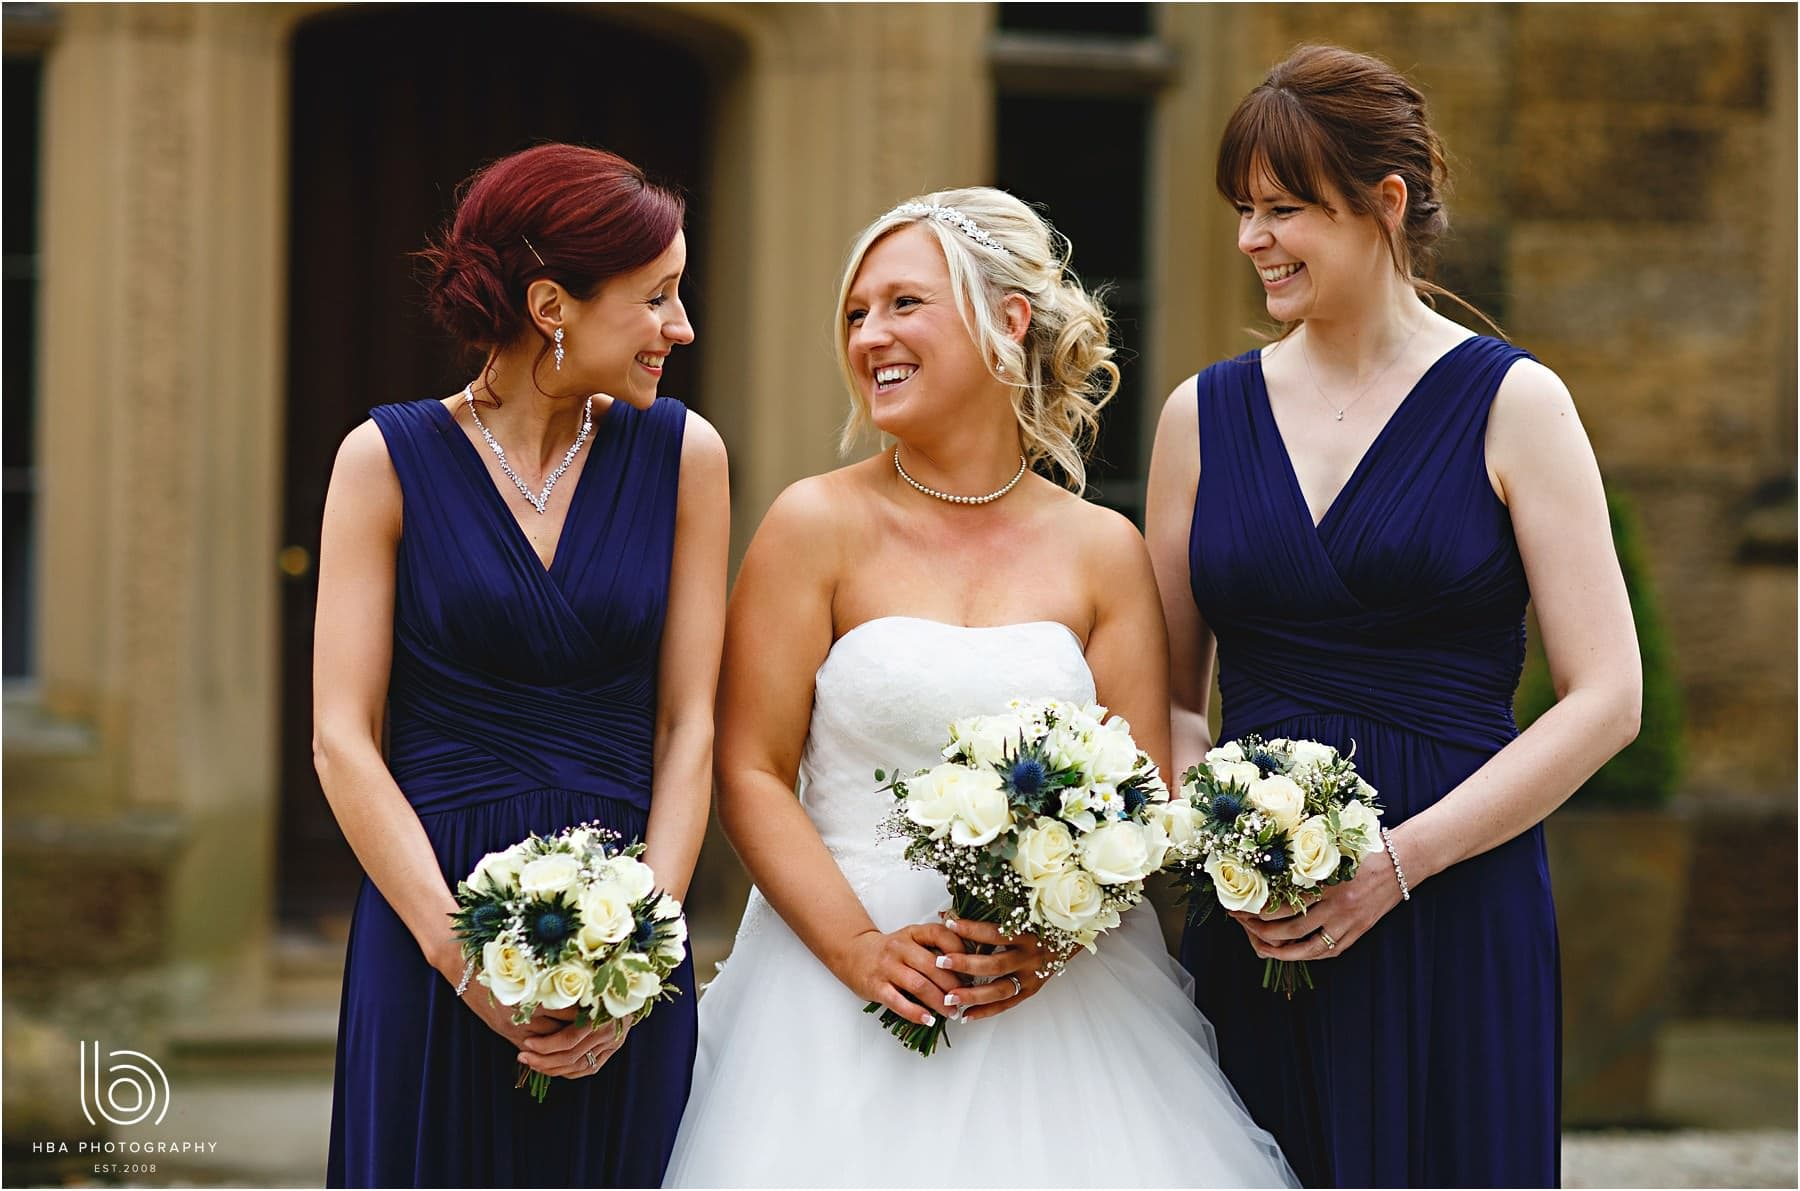 The bride and the bridesmaids in blue